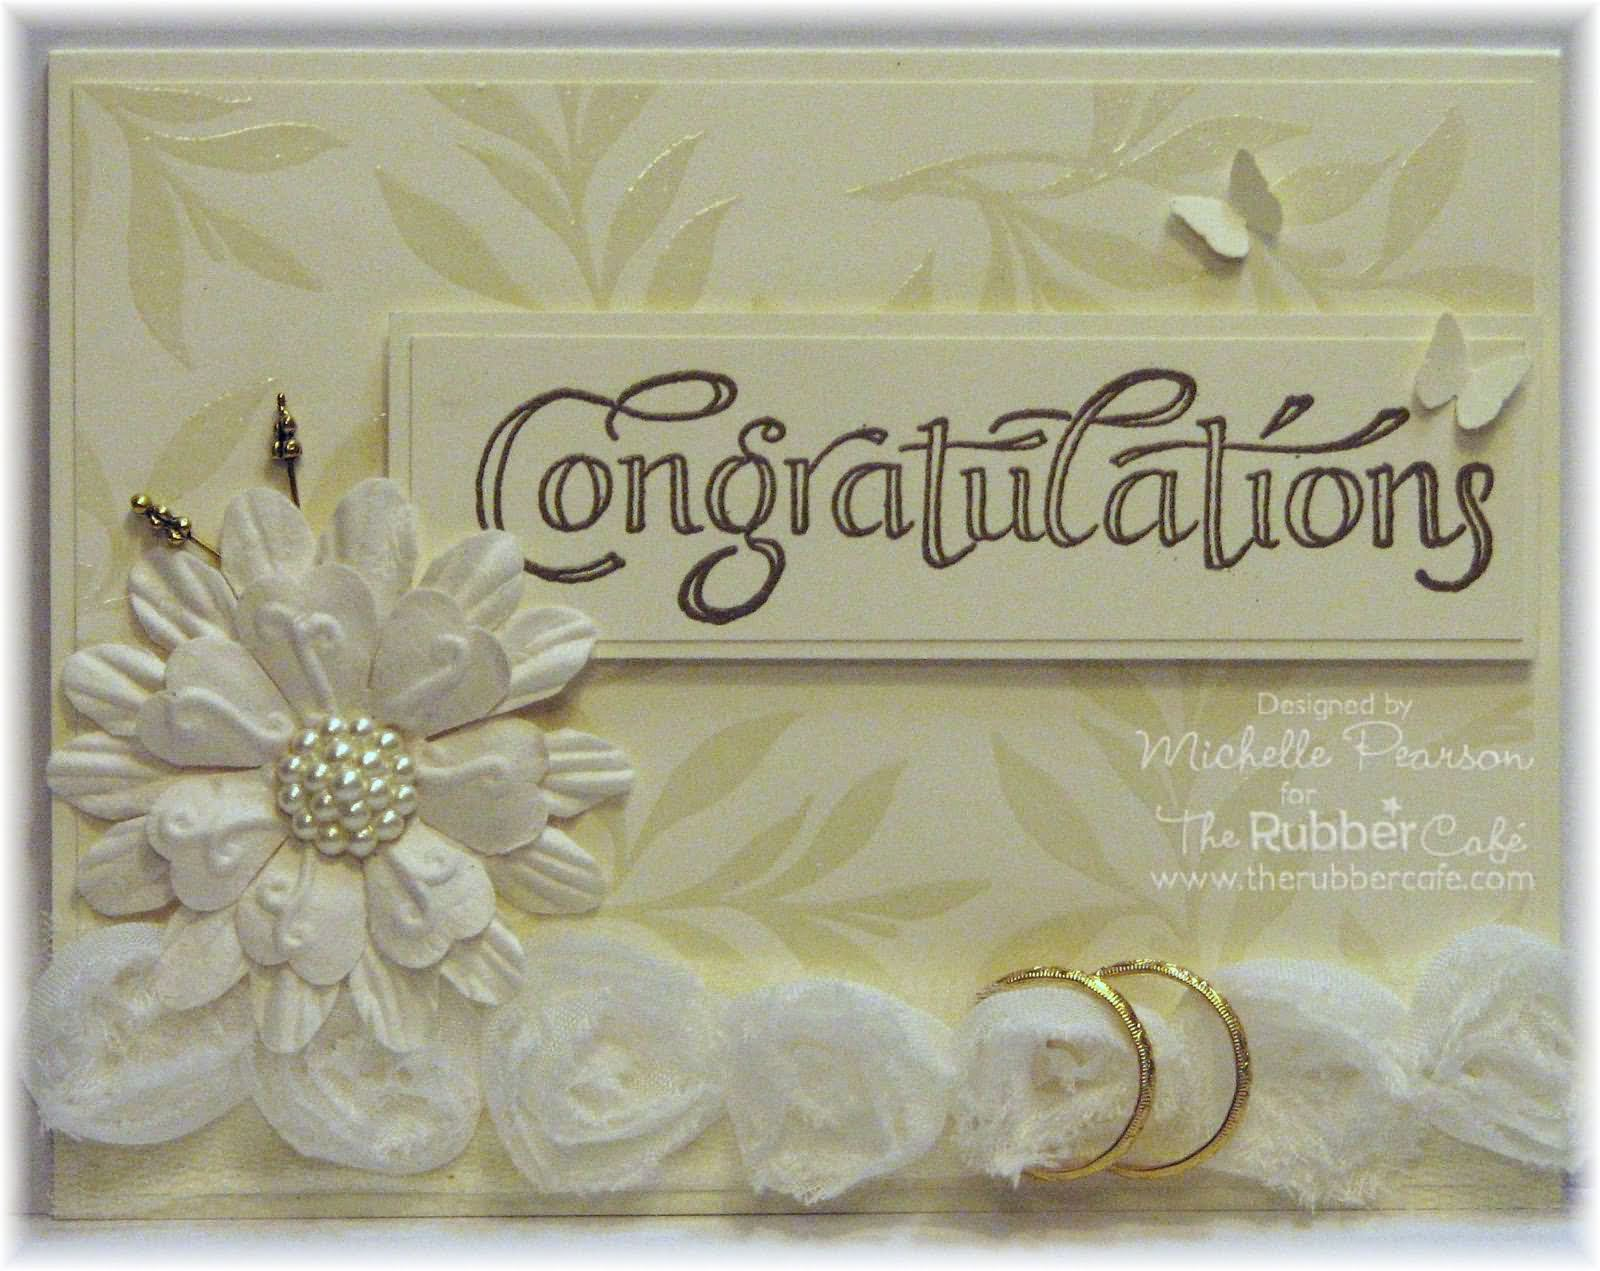 Congratulations greeting card clipart suggest